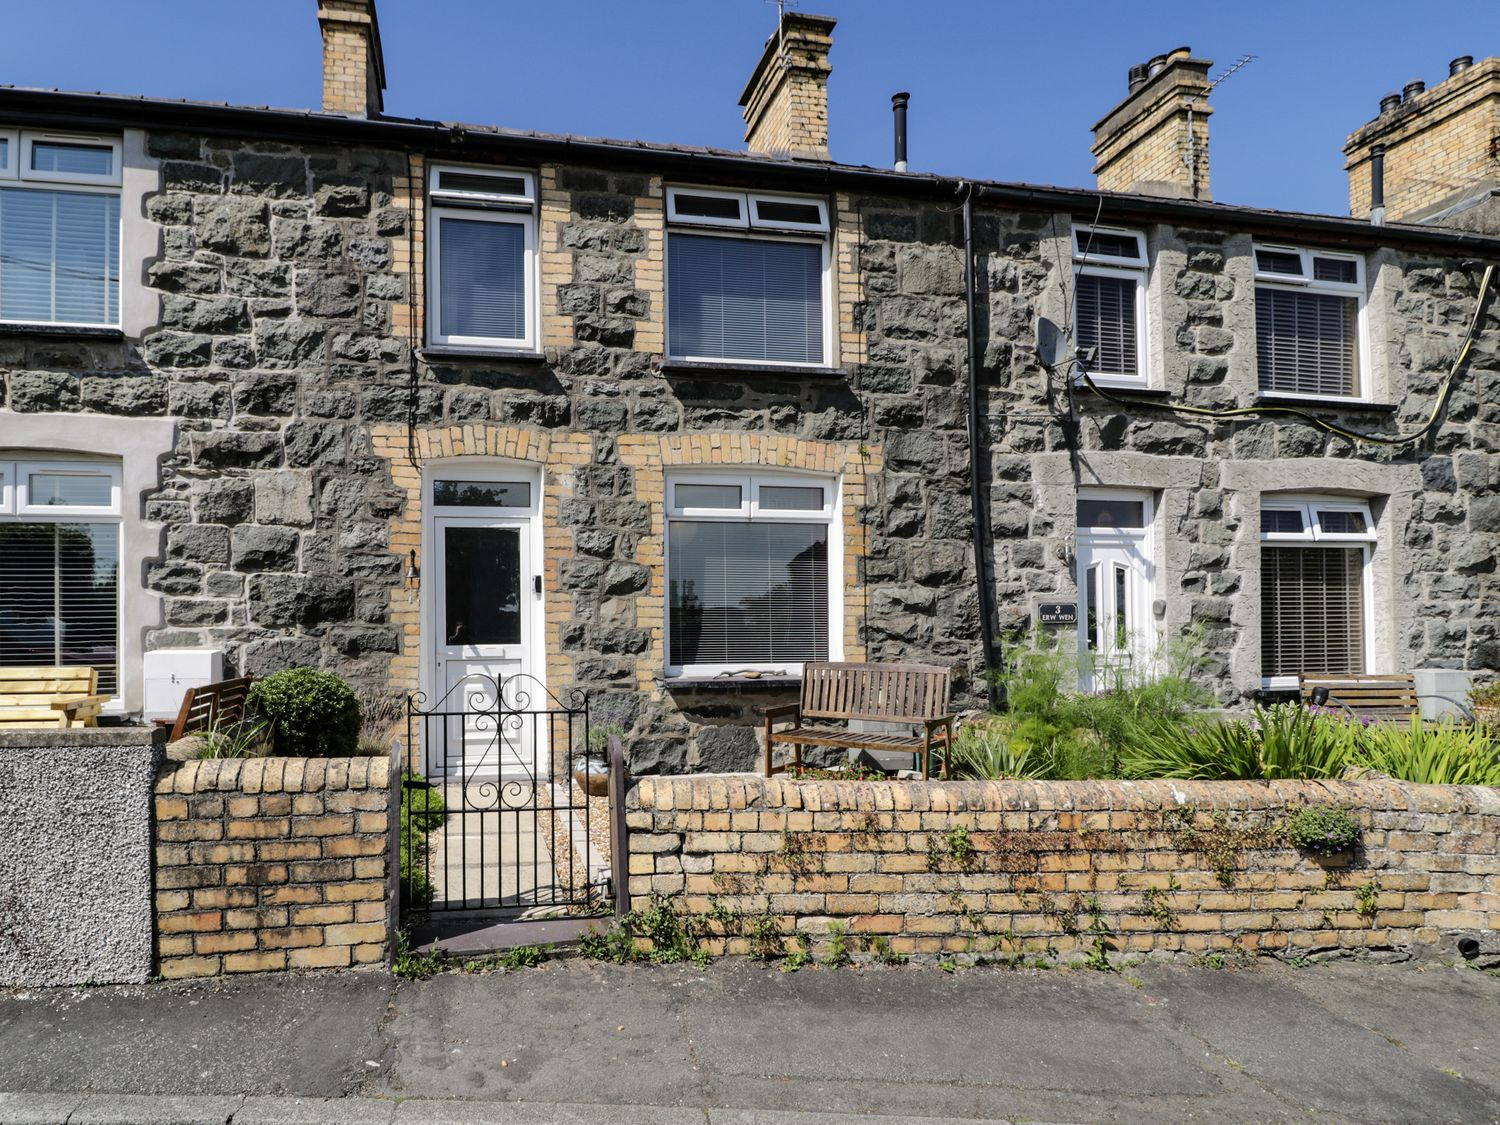 4 Arvonia Terrace - North Wales - 1073336 - photo 1